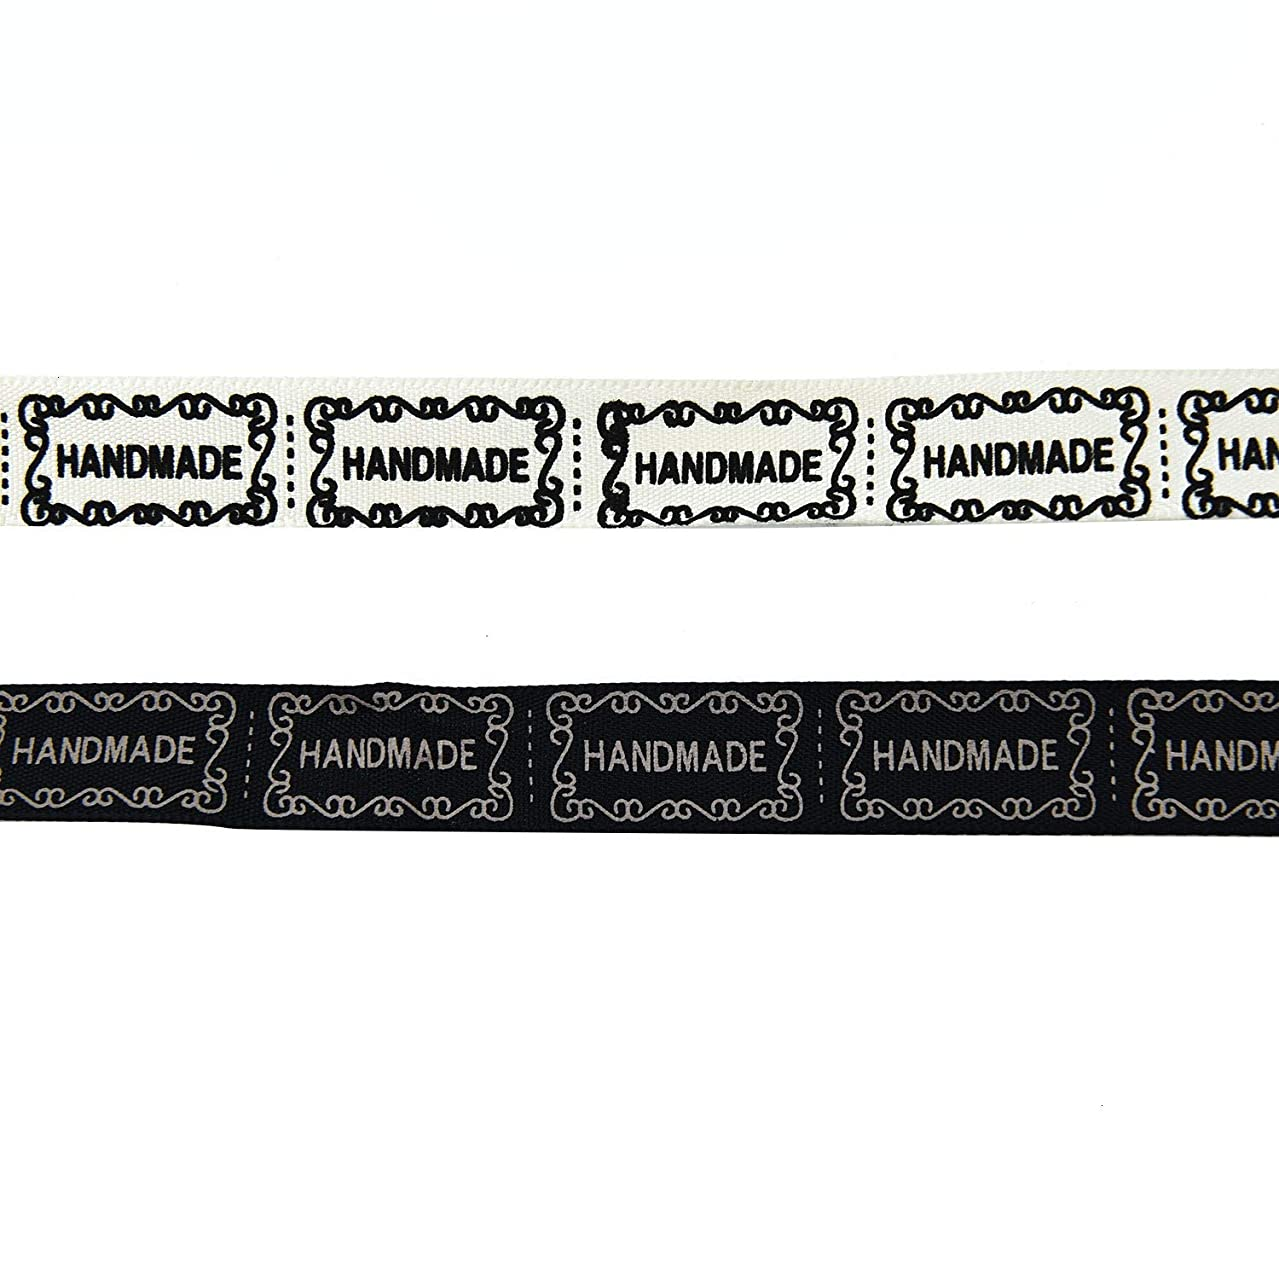 Monrocco 2Roll 20 Yards Hand Made Labels Fabric Ribbon for Sewing,DIY Crafts Accessories - Black,Beige